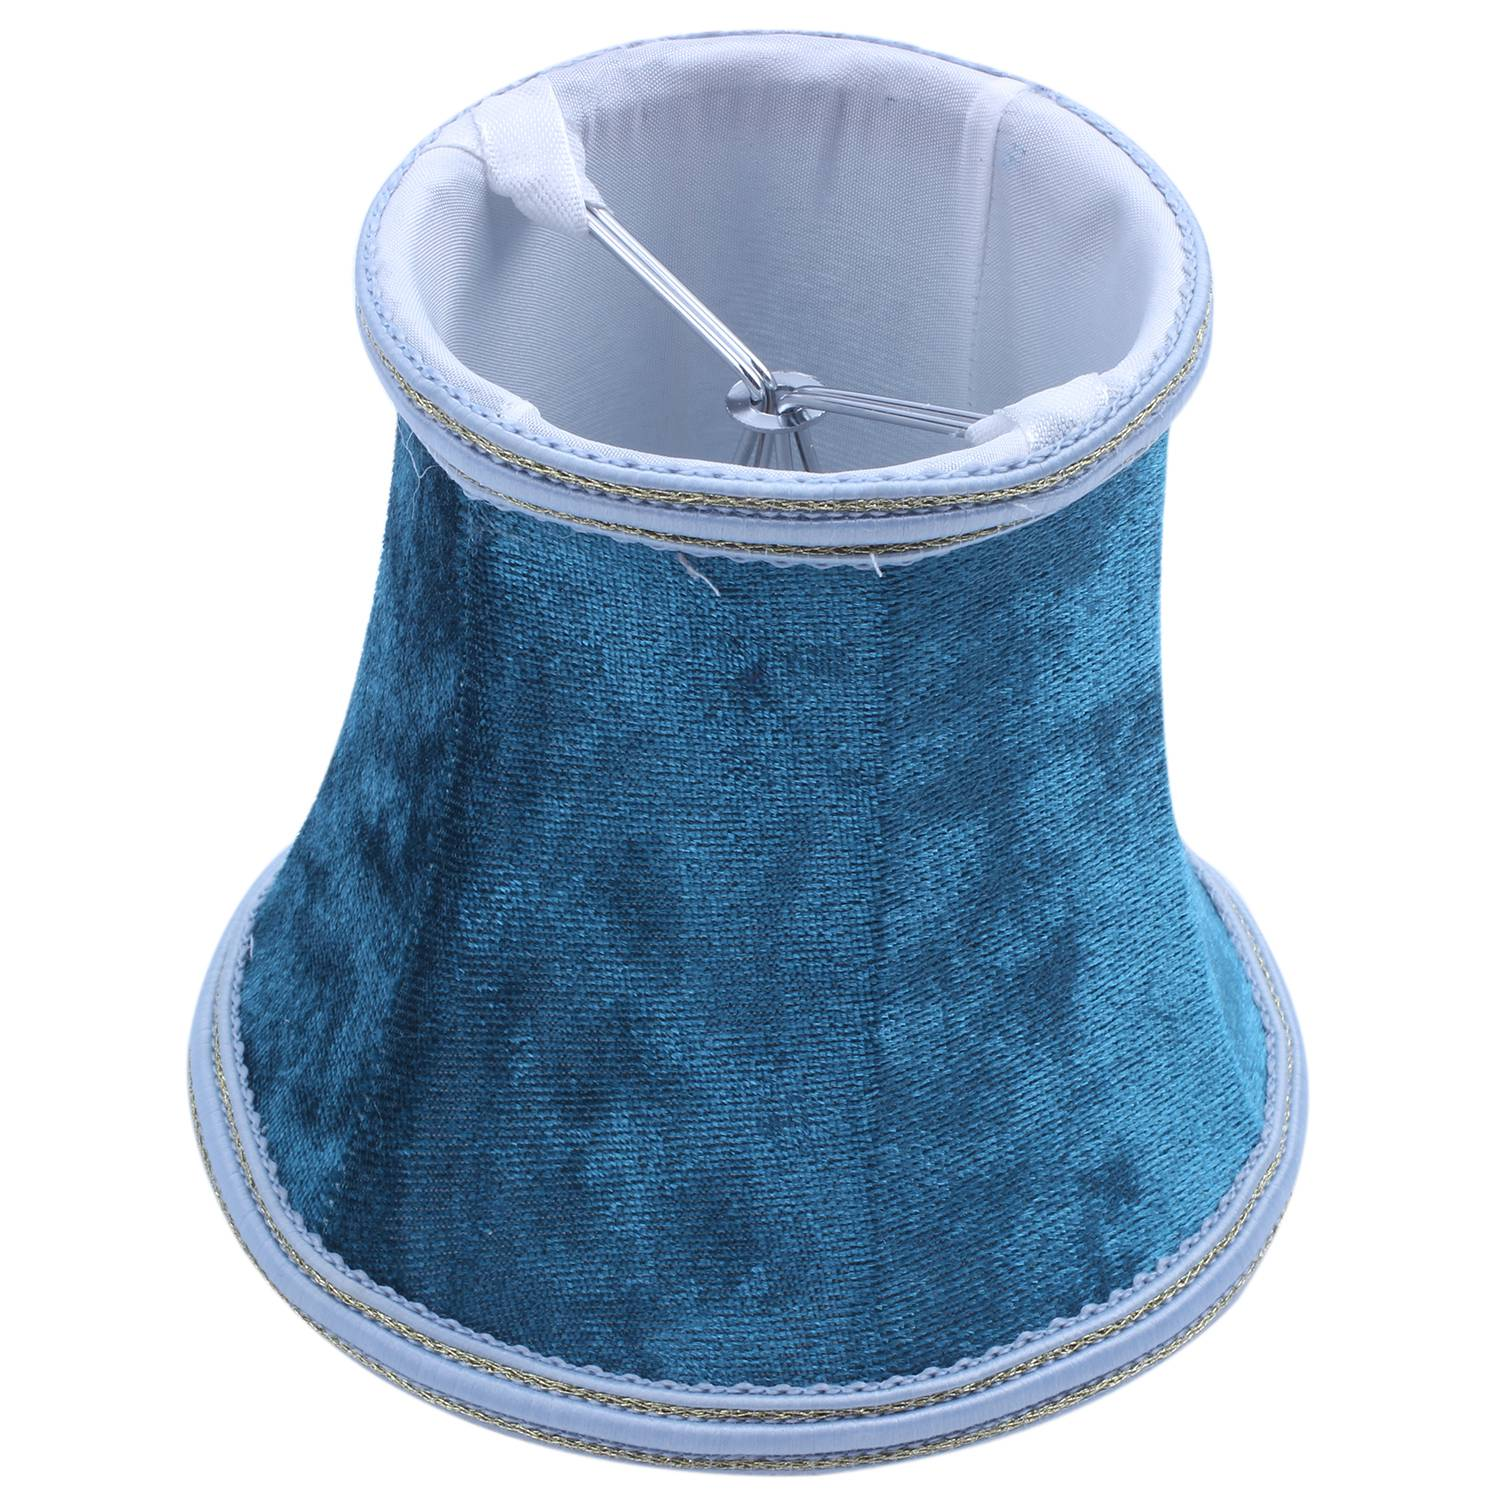 Fabric Clip On Lamp Shade, E14 Handmade Lampshade For Modern European Style Wall Sconce Lamp, Crystal Candle